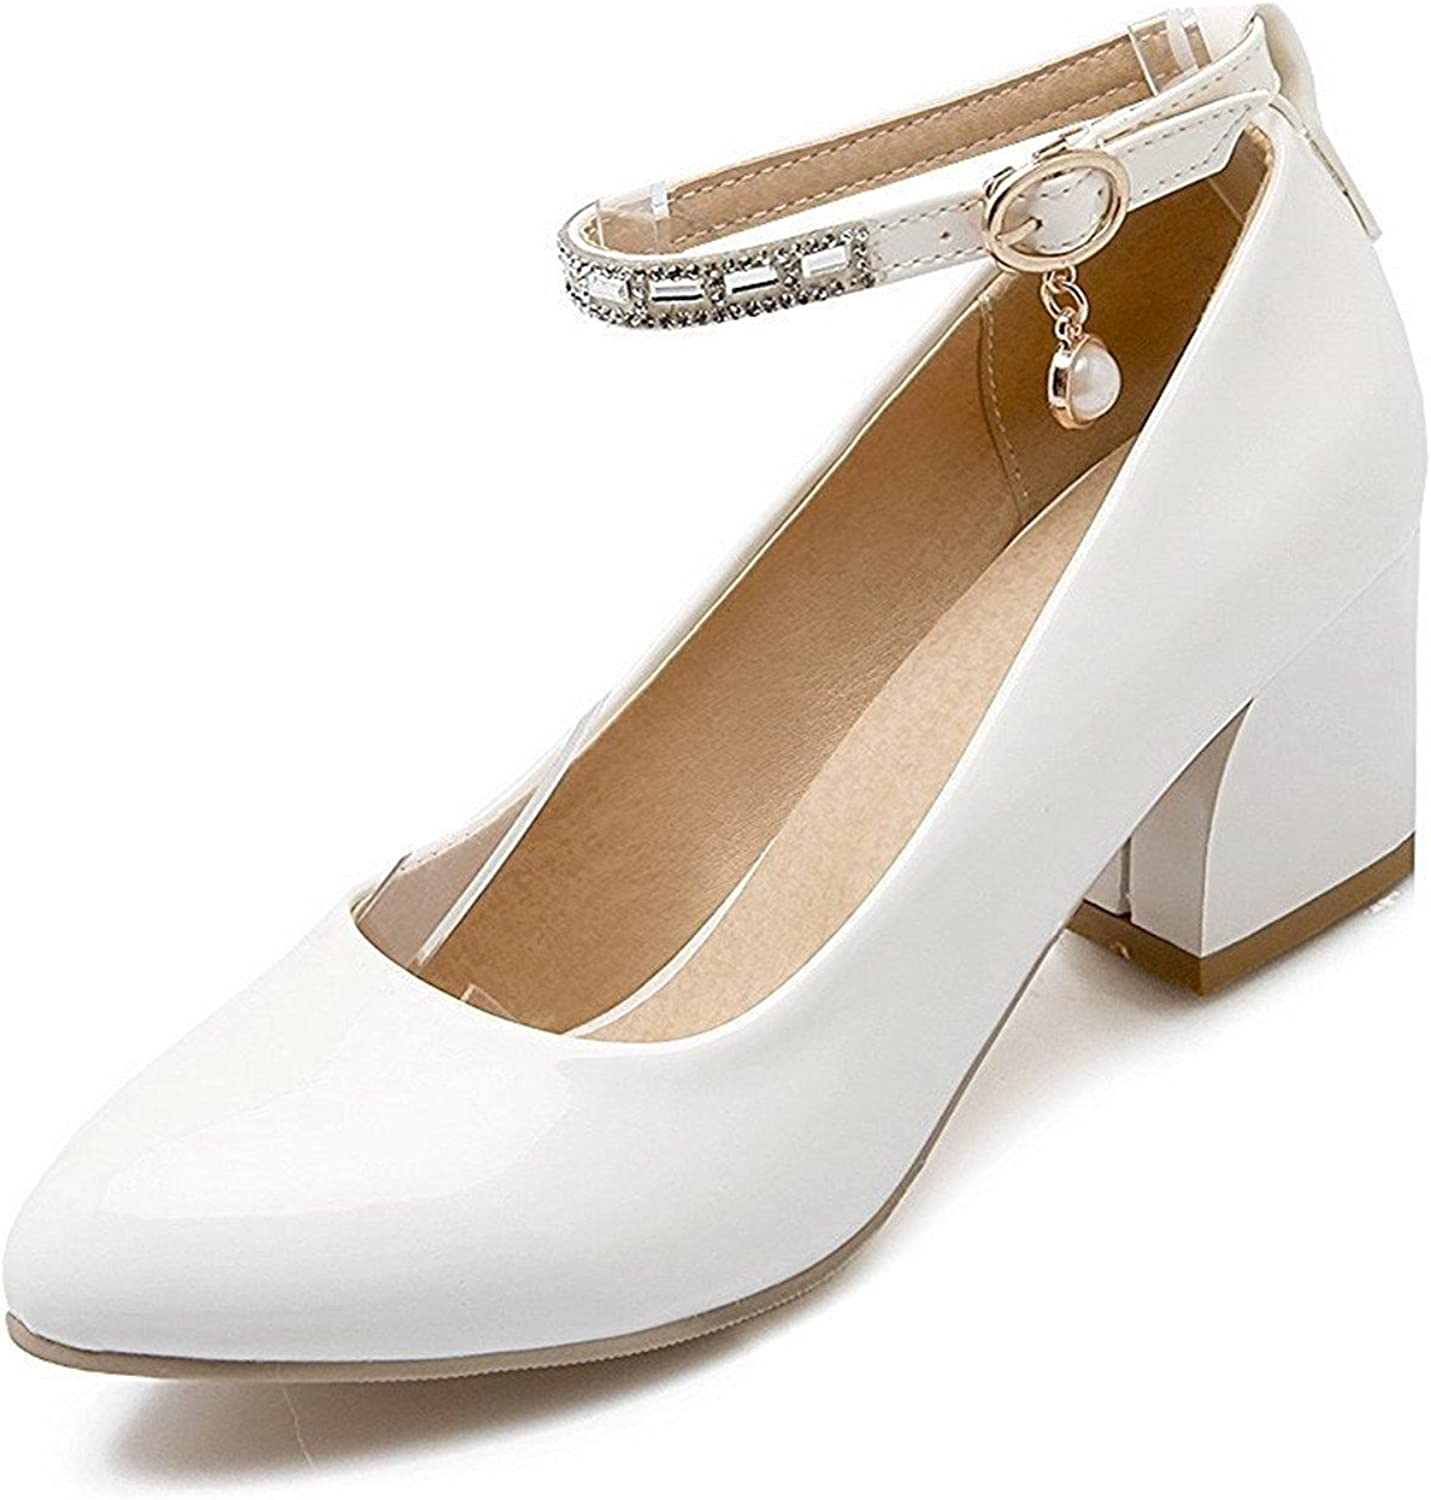 Tirahse Comfortable Women's Solid Patent Leather Low-Heels Buckle Pointed Closed Toe Pumps-shoes